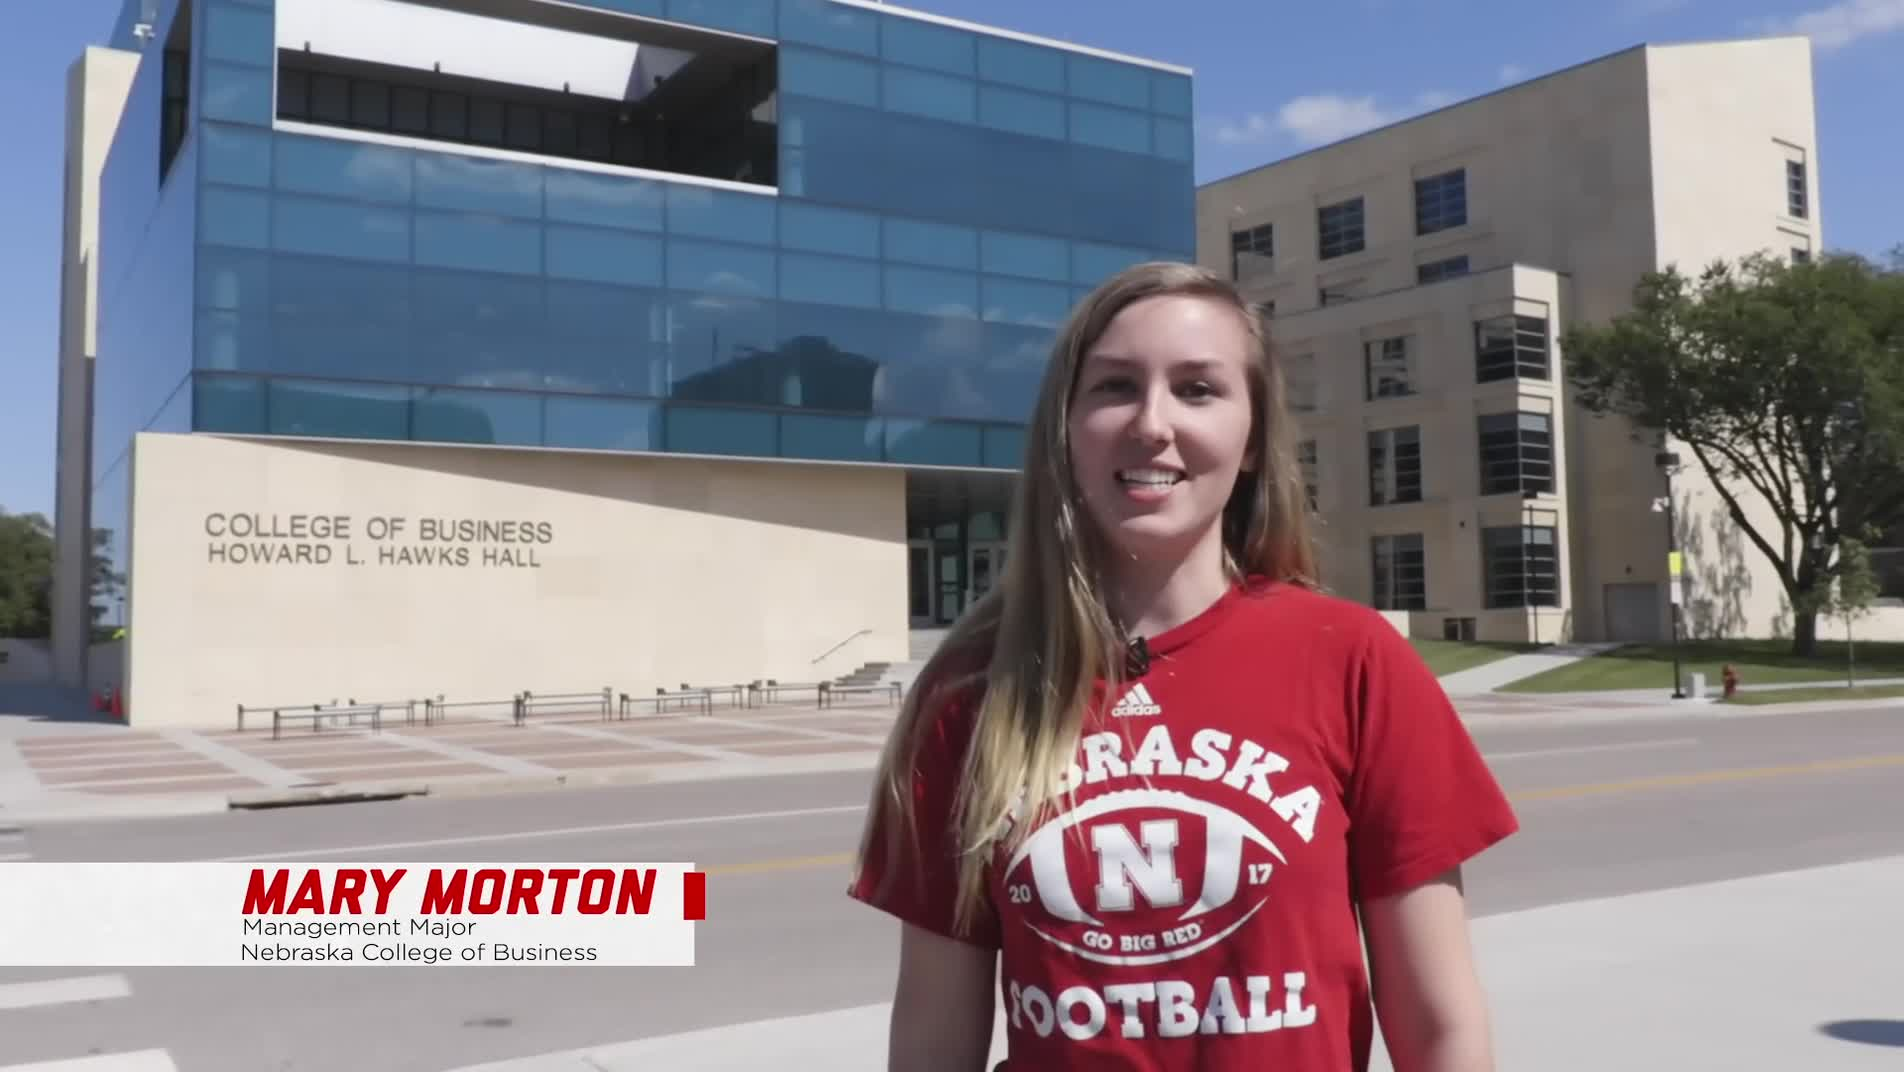 Tour of the Nebraska College of Business